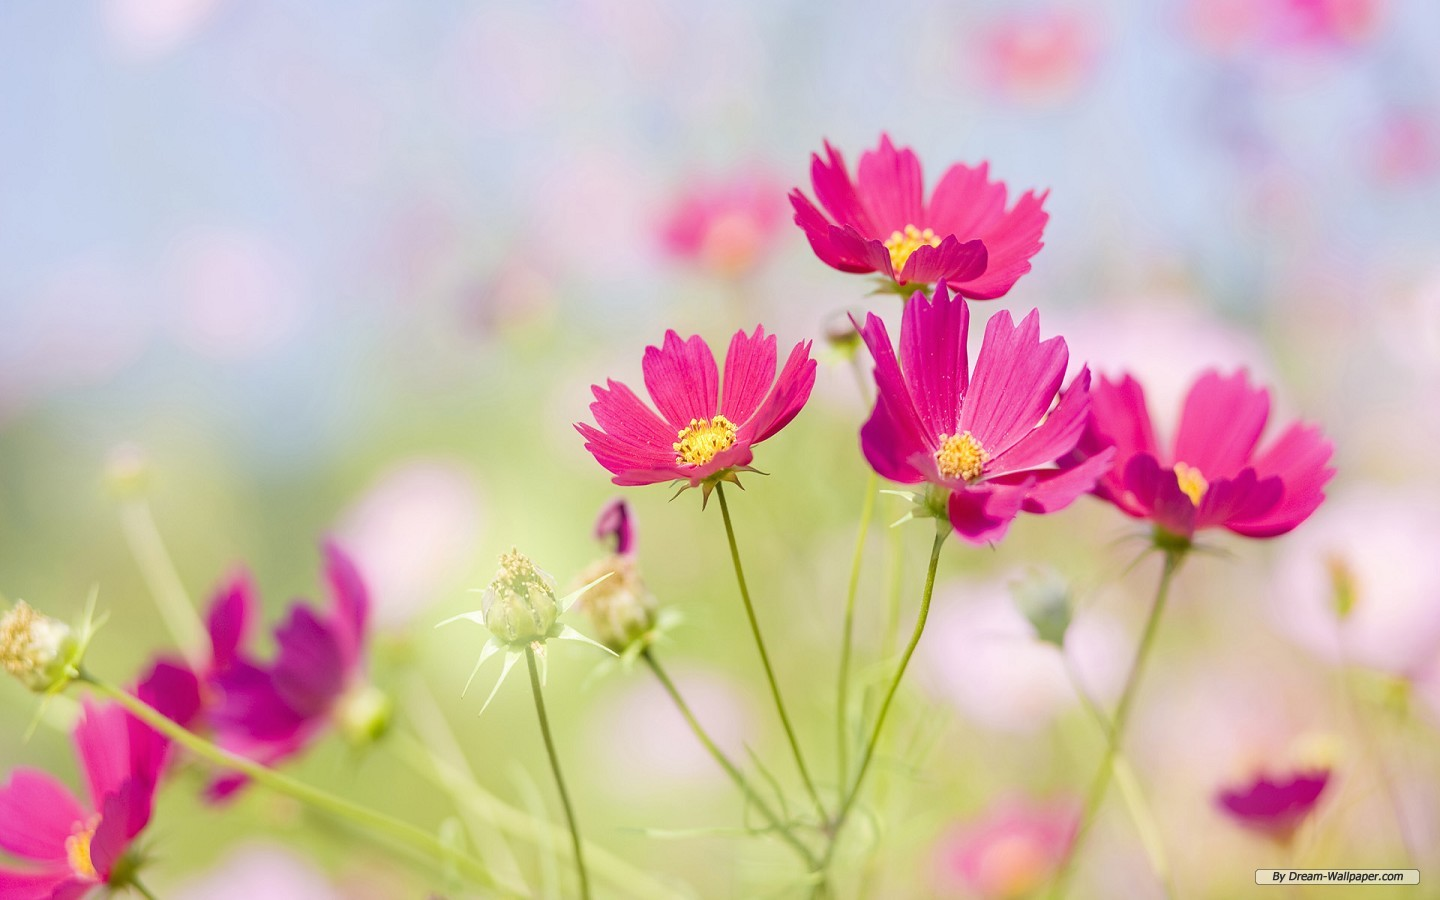 WWW Free Flower Wallpaper Com